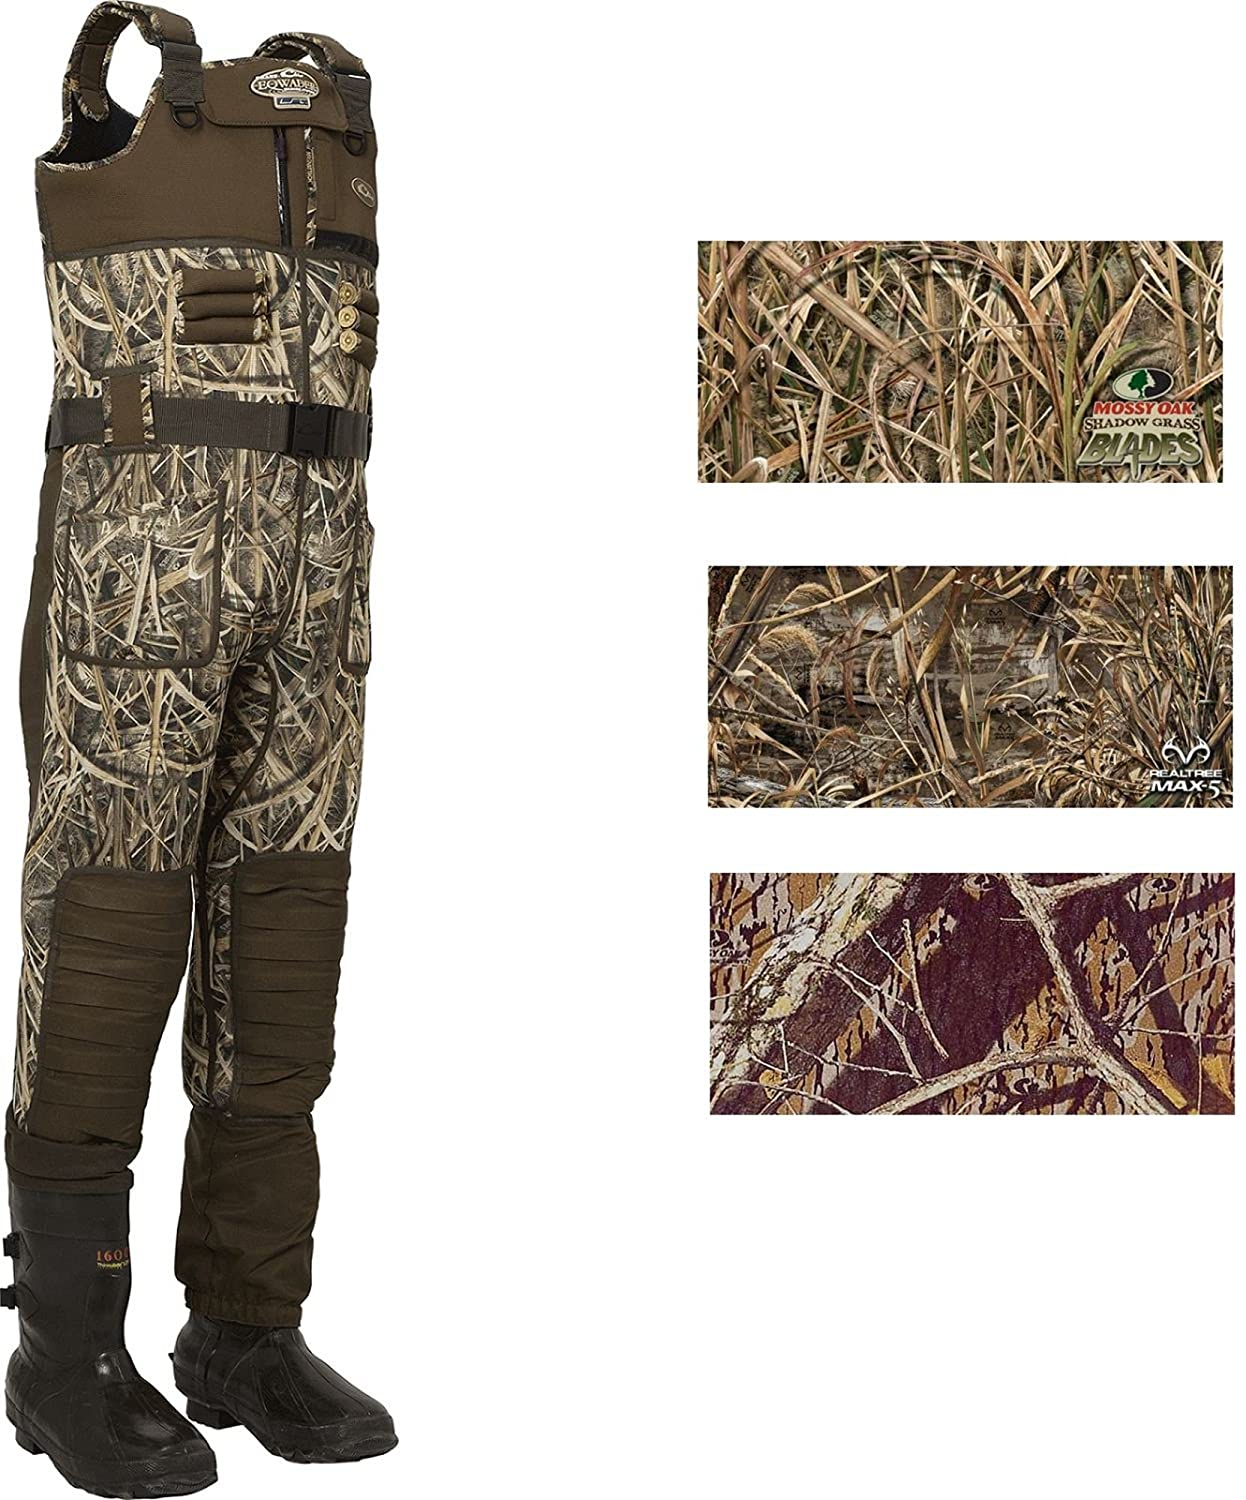 Drake MST Eqwader 2.0ネオプレンWader – Regular B015GKH470  Realtree Max-5 9R